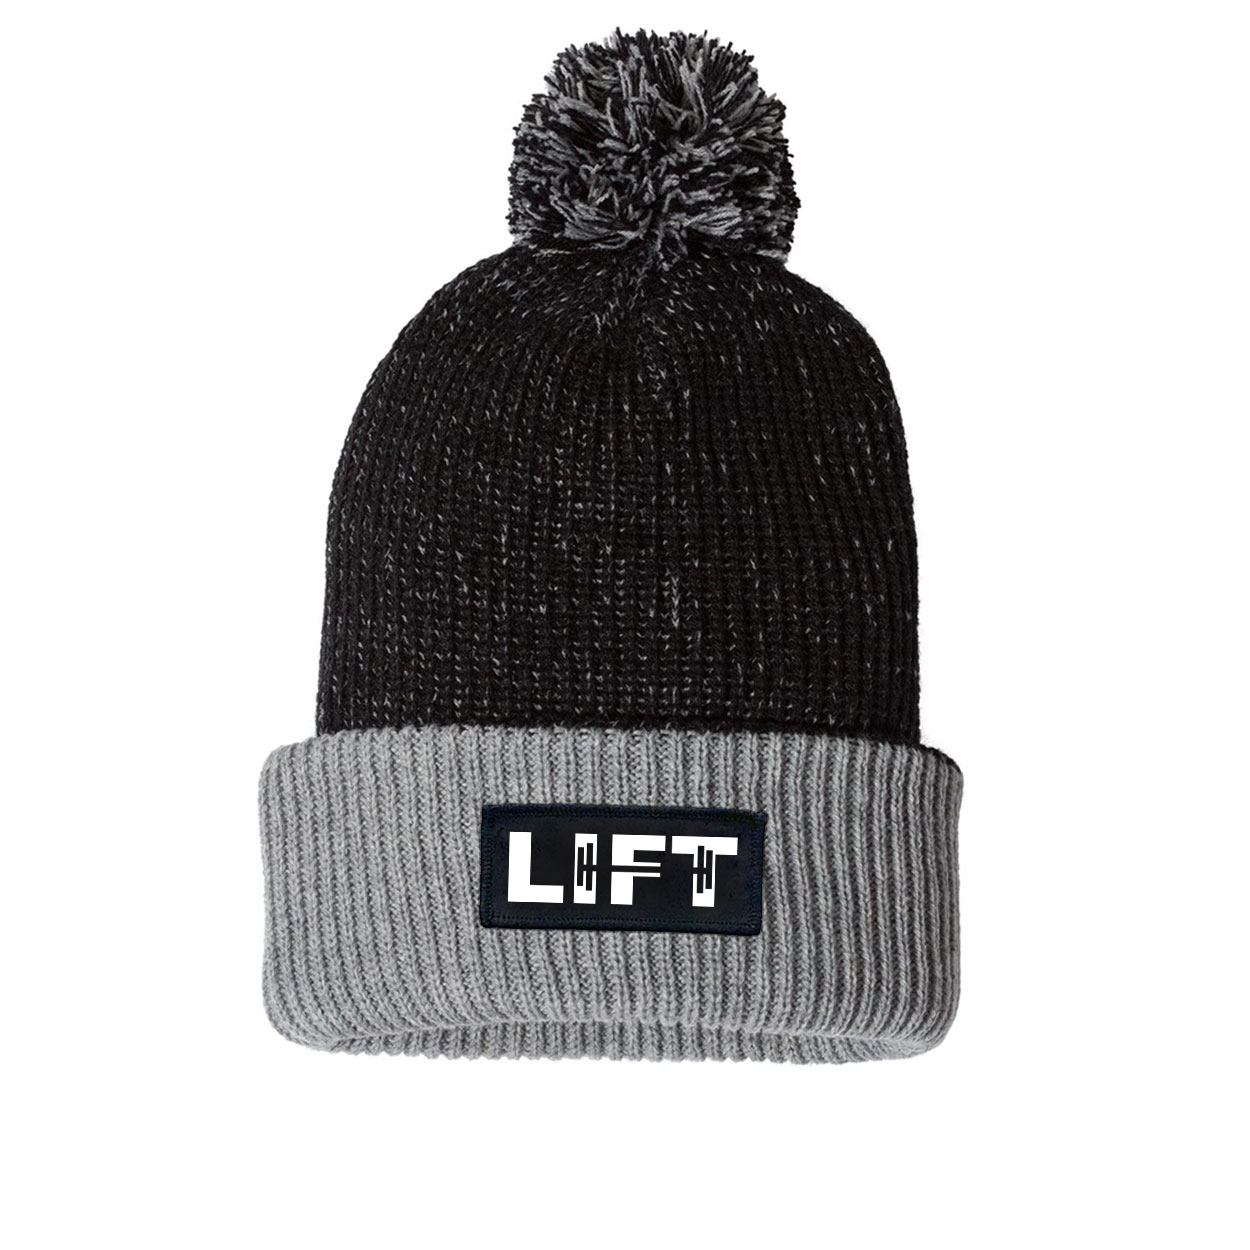 Lift Barbell Logo Night Out Woven Patch Roll Up Pom Knit Beanie Black/Gray (White Logo)